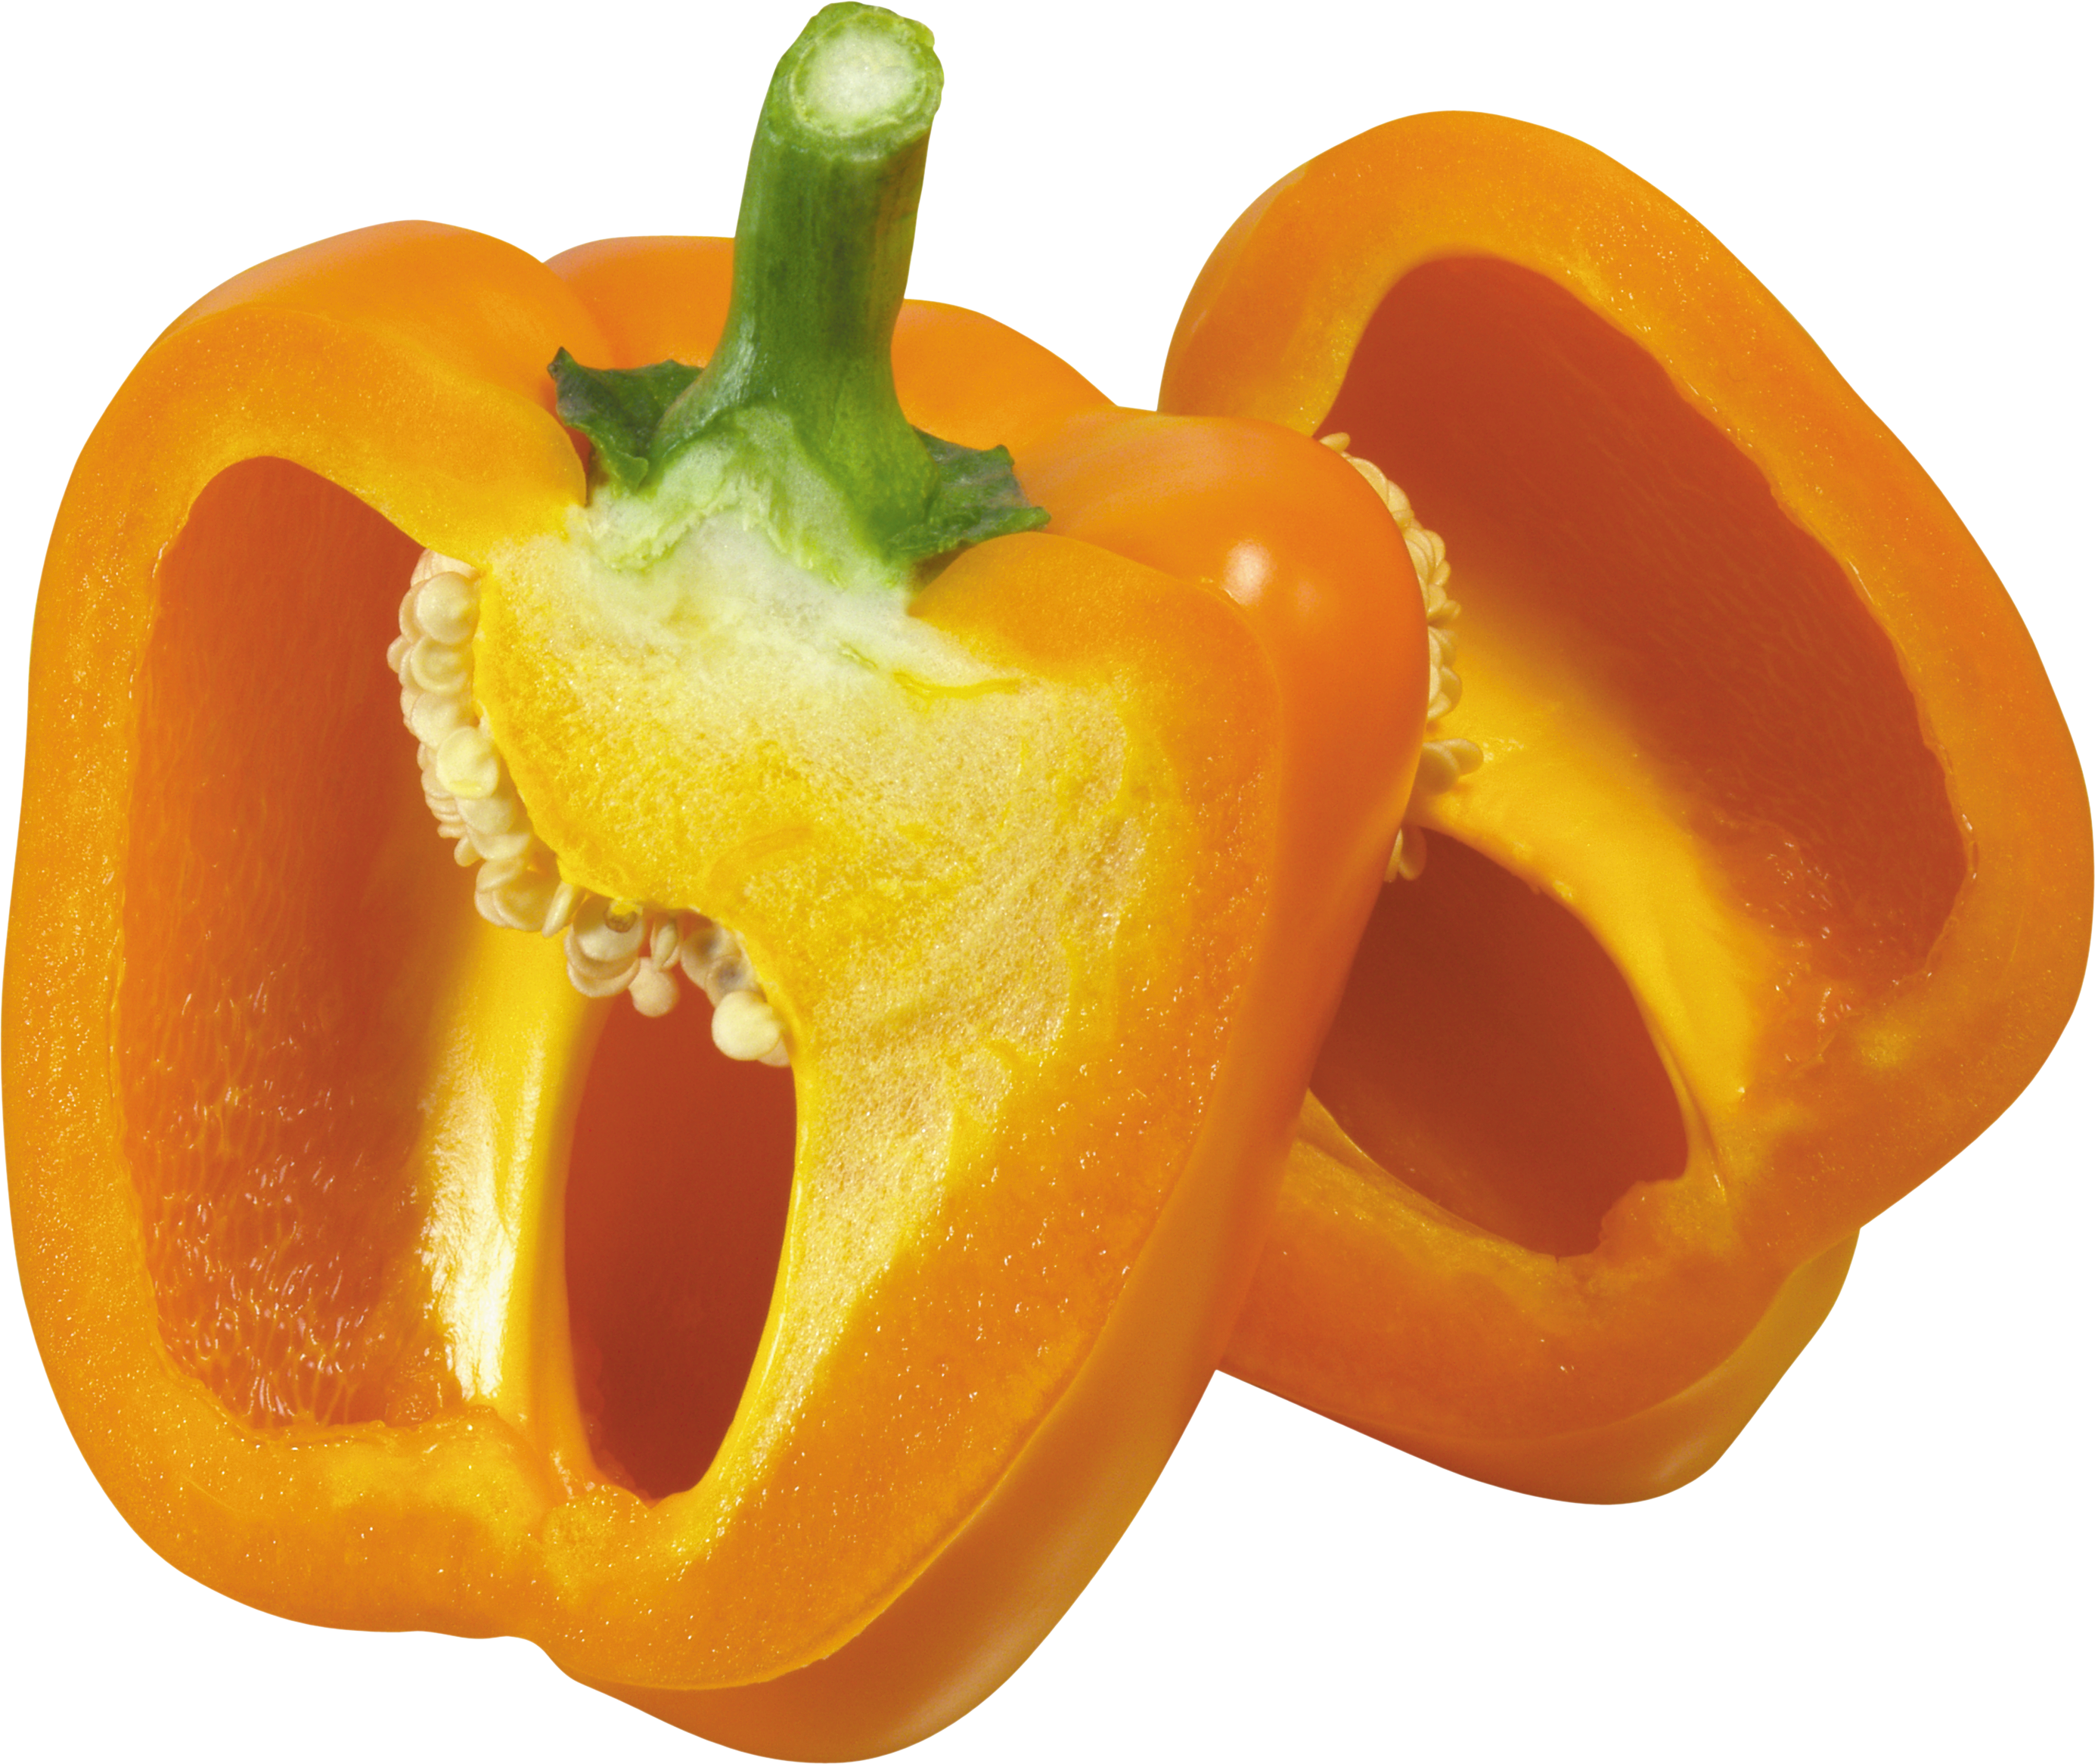 Yellow pepper PNG image